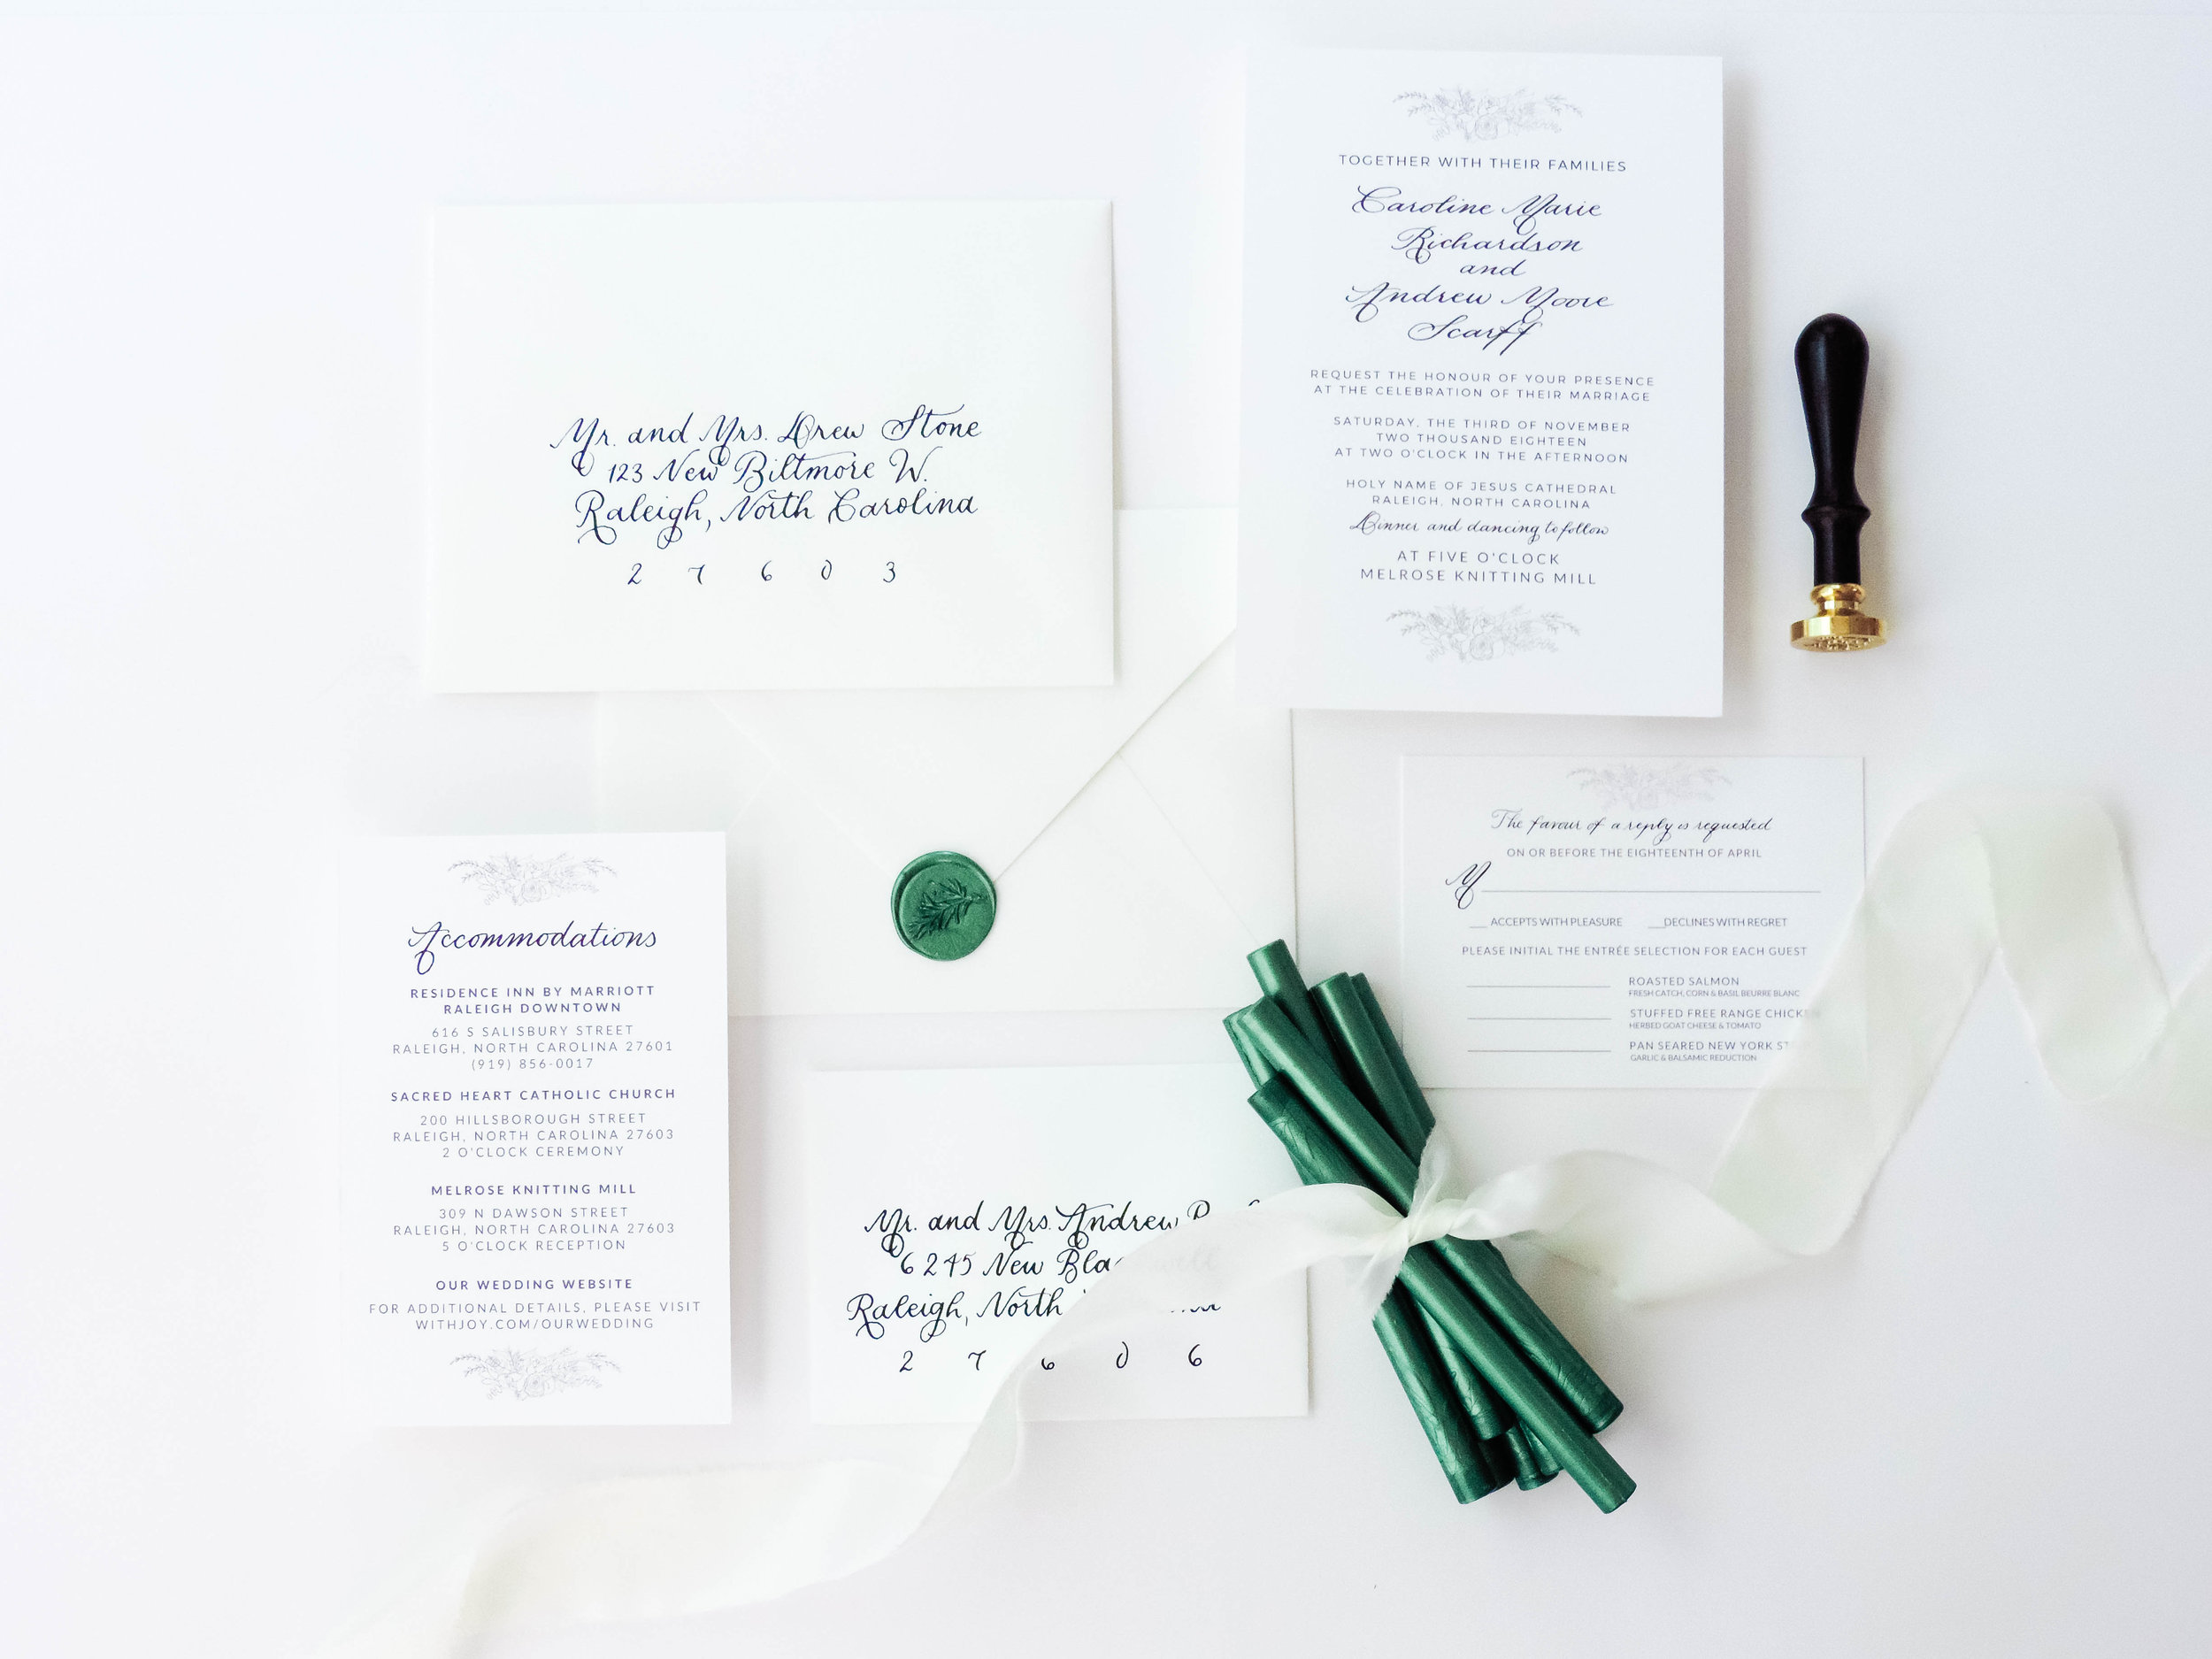 Pictured: Green Wax Sticks and Botanical Wax Seal Stamp by Uniqooo